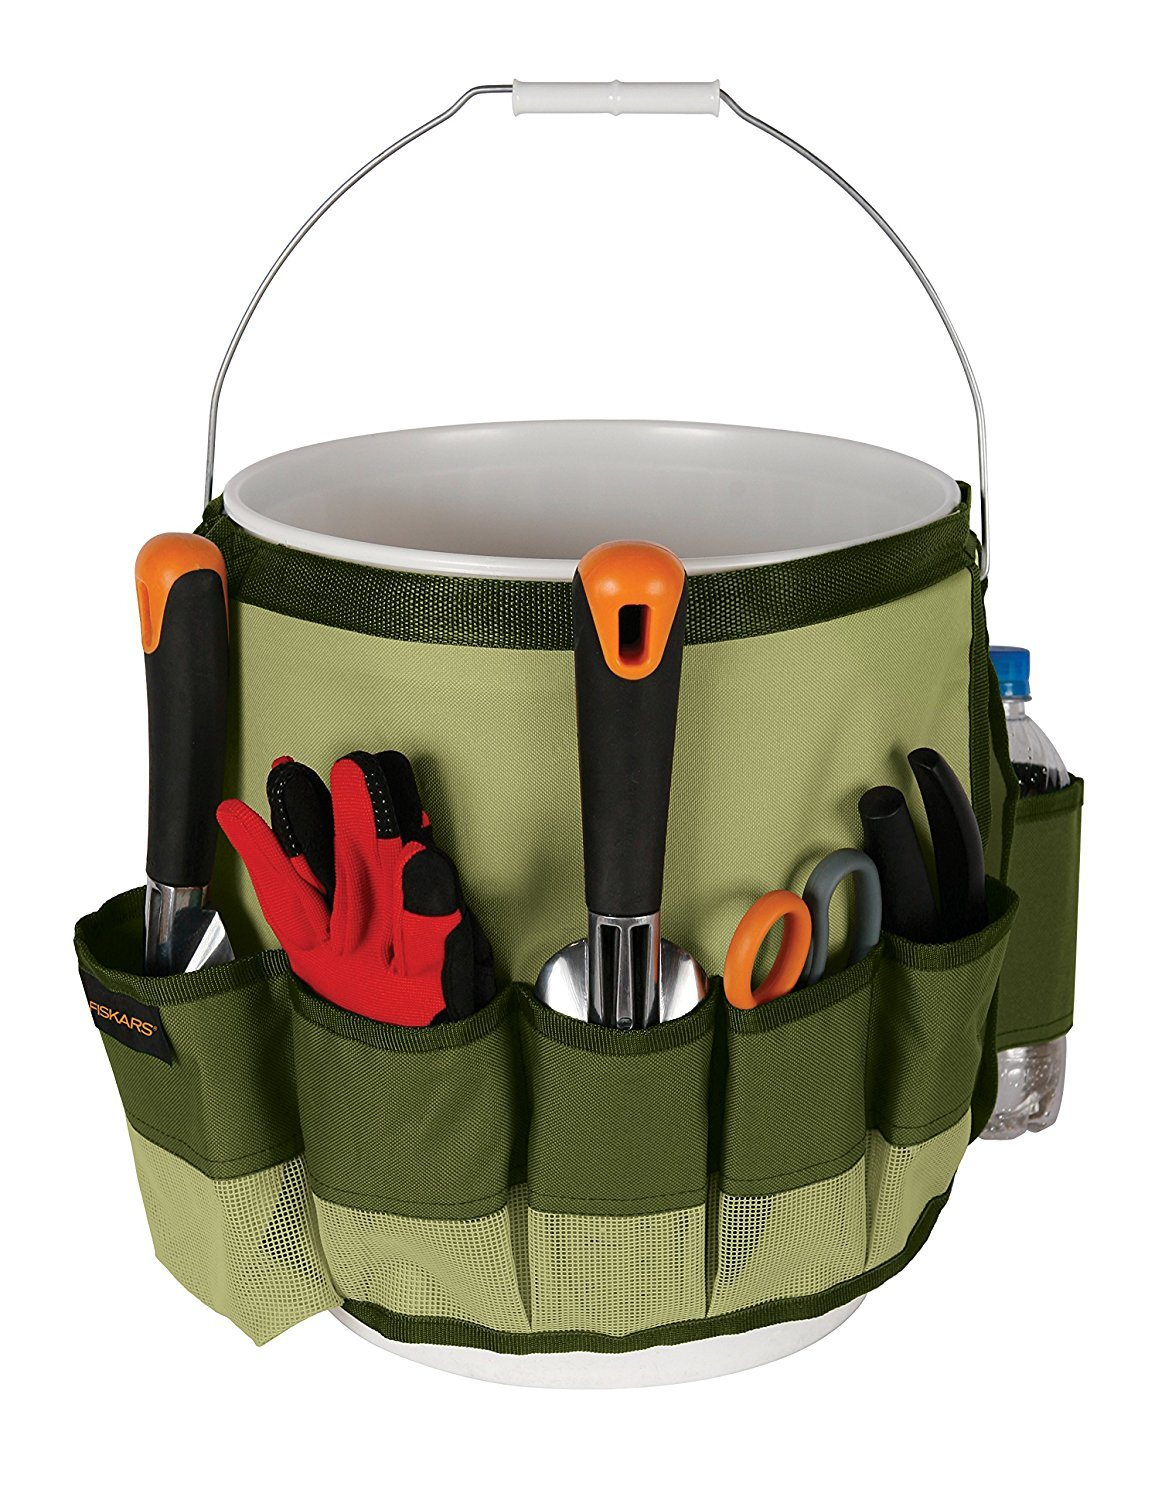 Garden Bucket Caddy Garden Tool Tote Home Organizer Mighty Bag Compact Tool Storage Tote Bucket Not Included Esg10164 pictures & photos